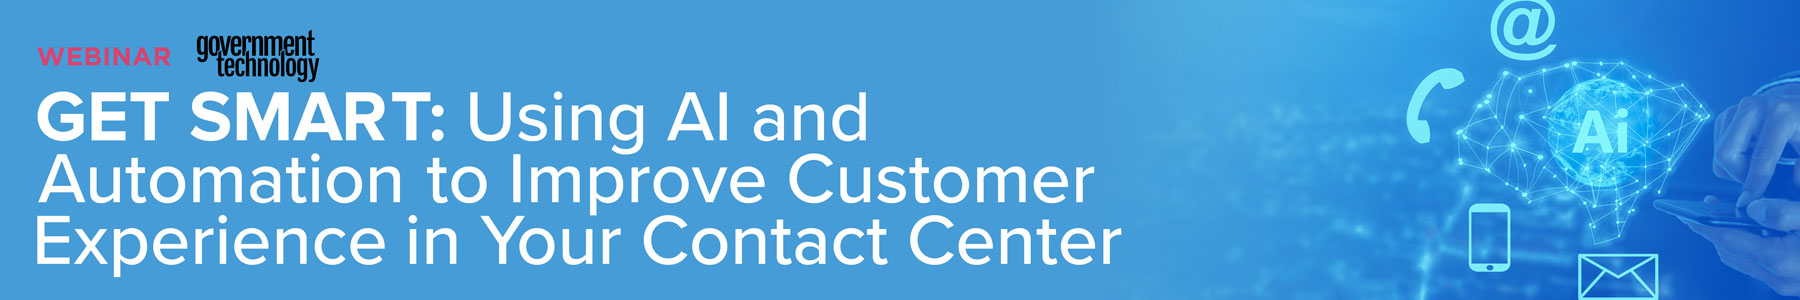 Get Smart: Using AI and Automation to Improve Customer Experience in Your Contact Center